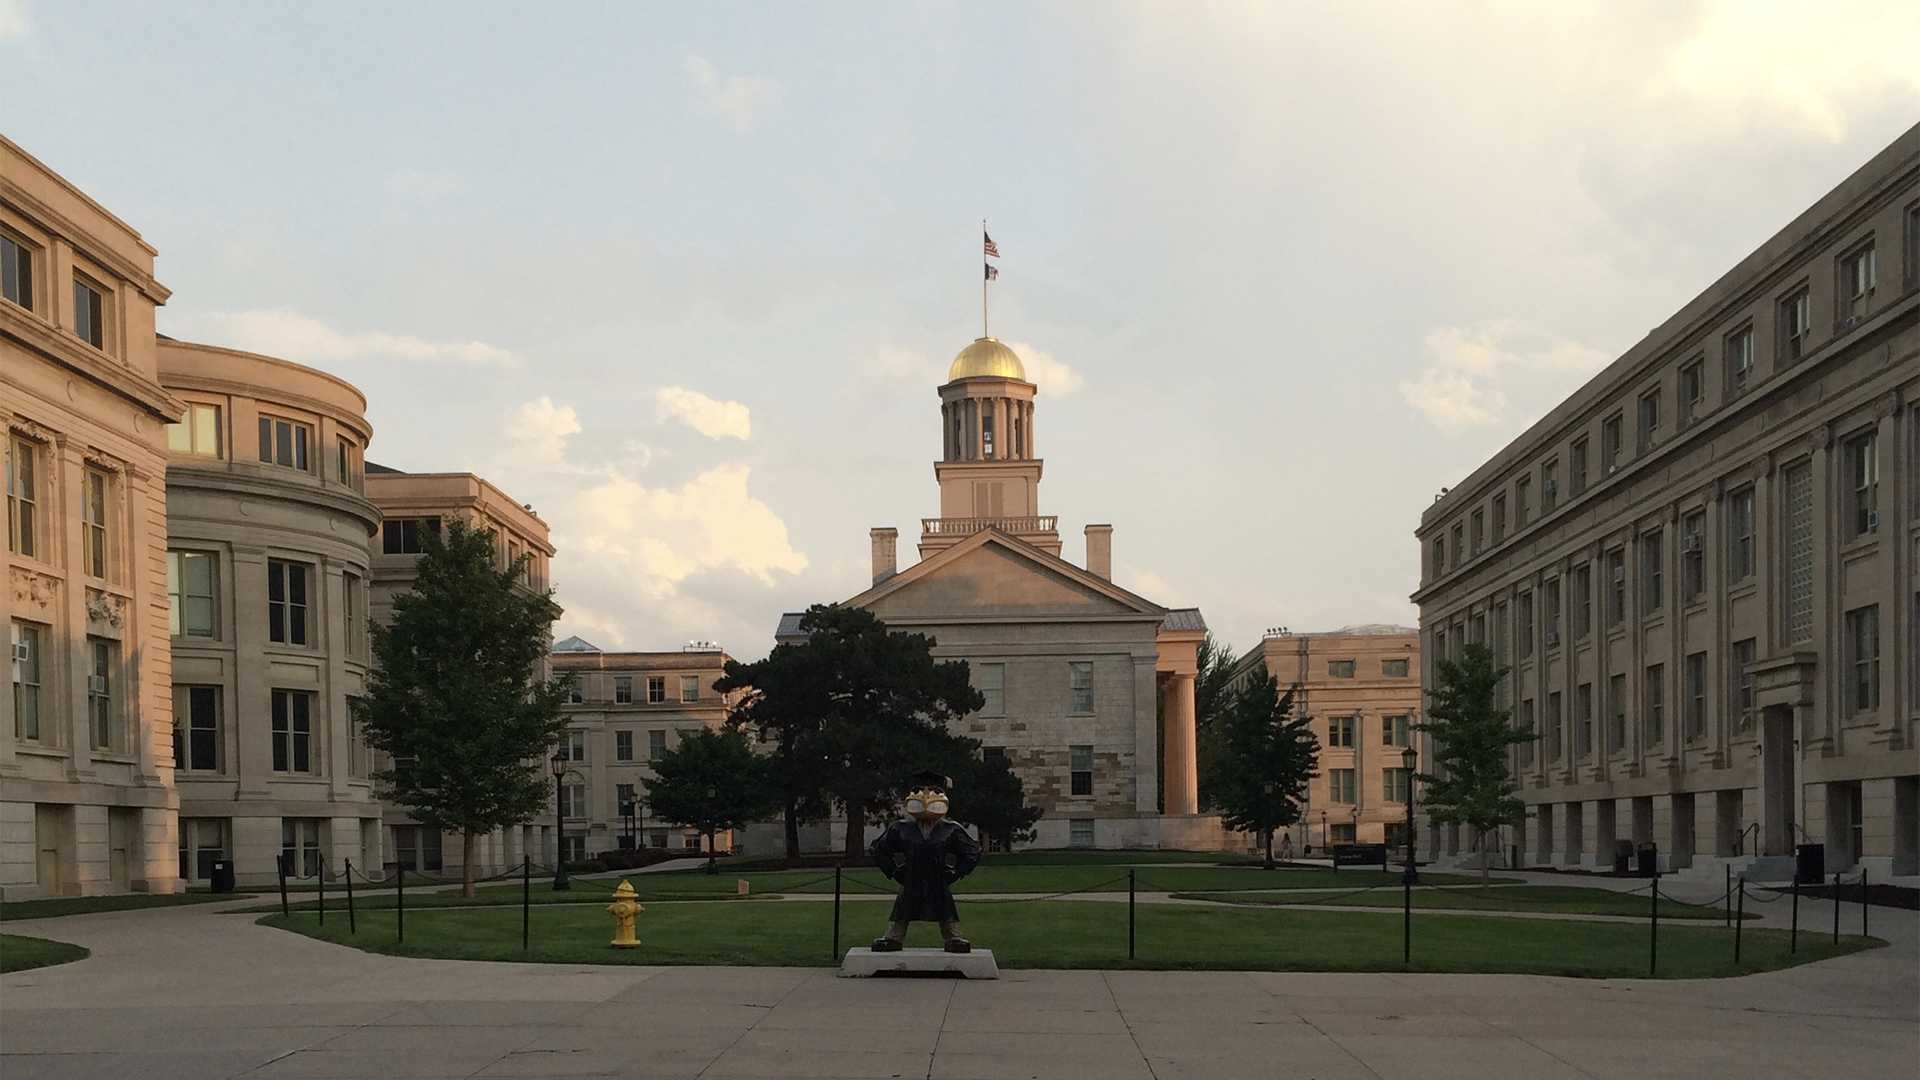 The Old Capitol is seen on July 16, 2015, the day DI reporter Marissa Payne, then a high school senior, first toured the UI campus. (Marissa Payne/The Daily Iowan)